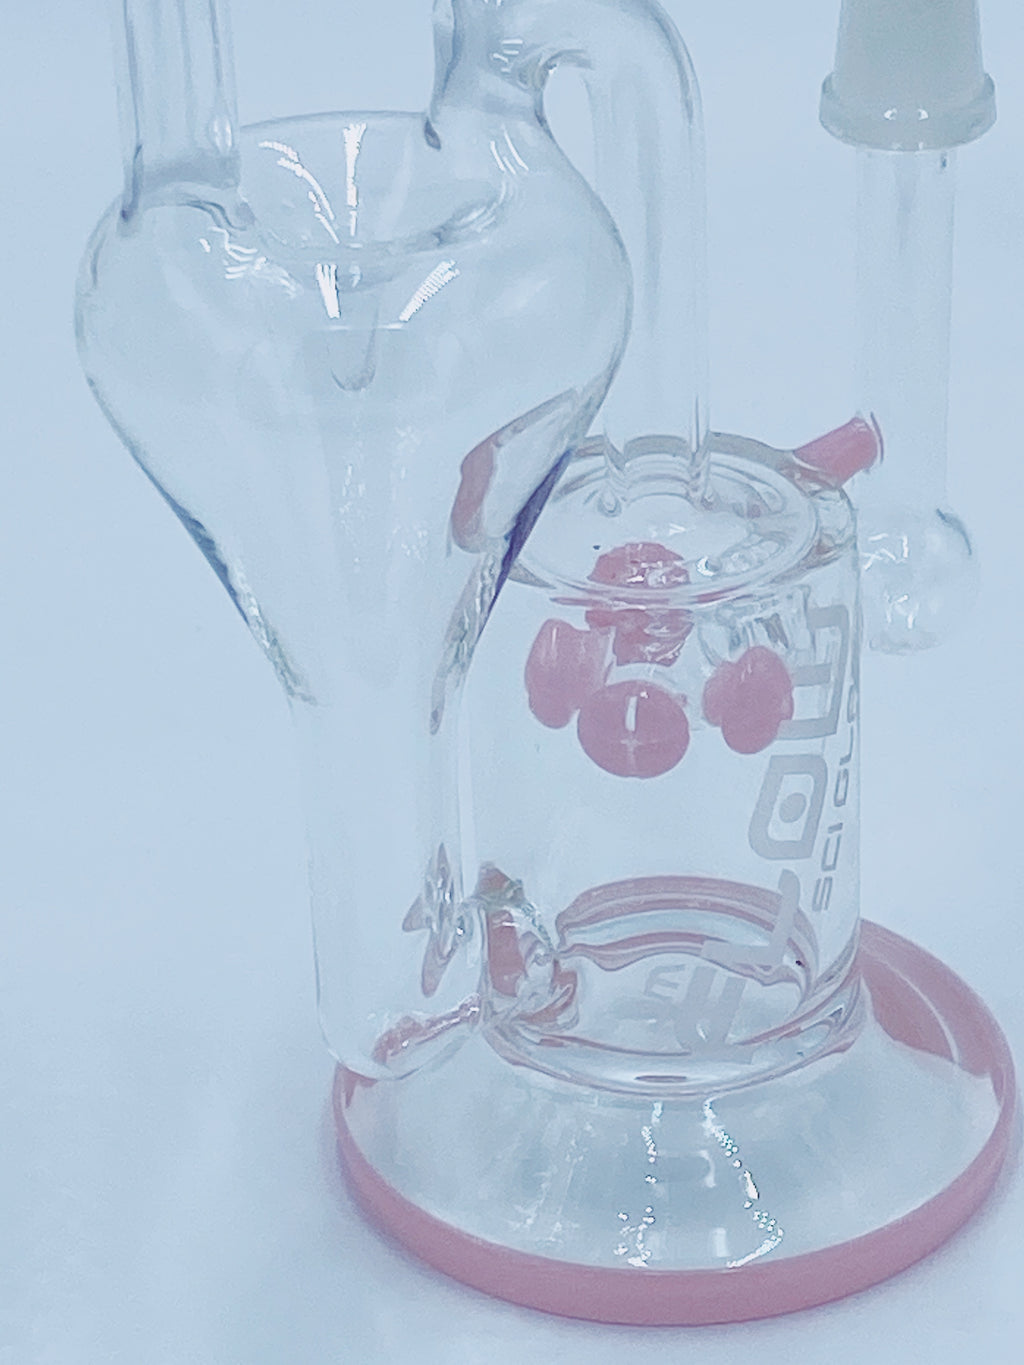 JM FLOW PINK RECYCLER - Smoke Country - Land of the artistic glass blown bongs